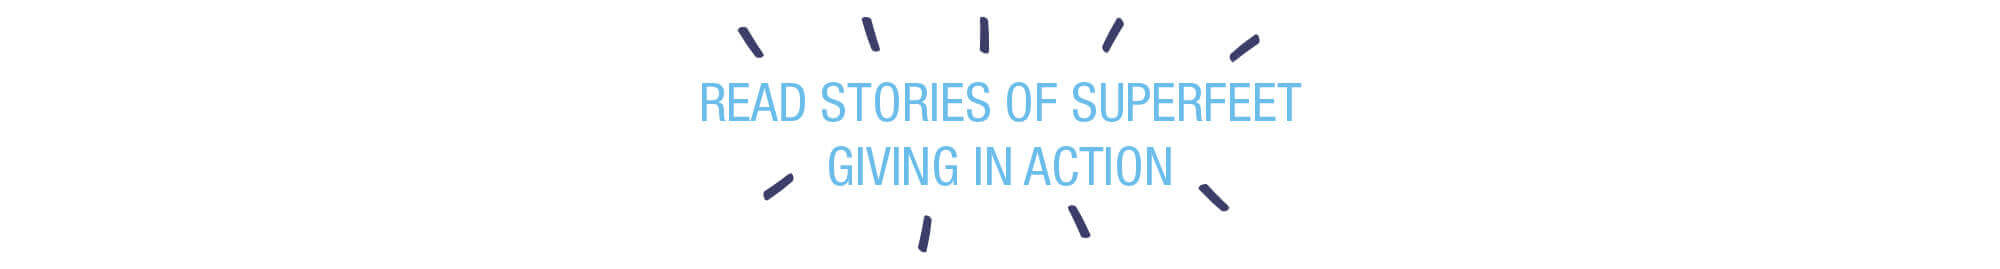 Read Stories of Superfeet Giving in Action